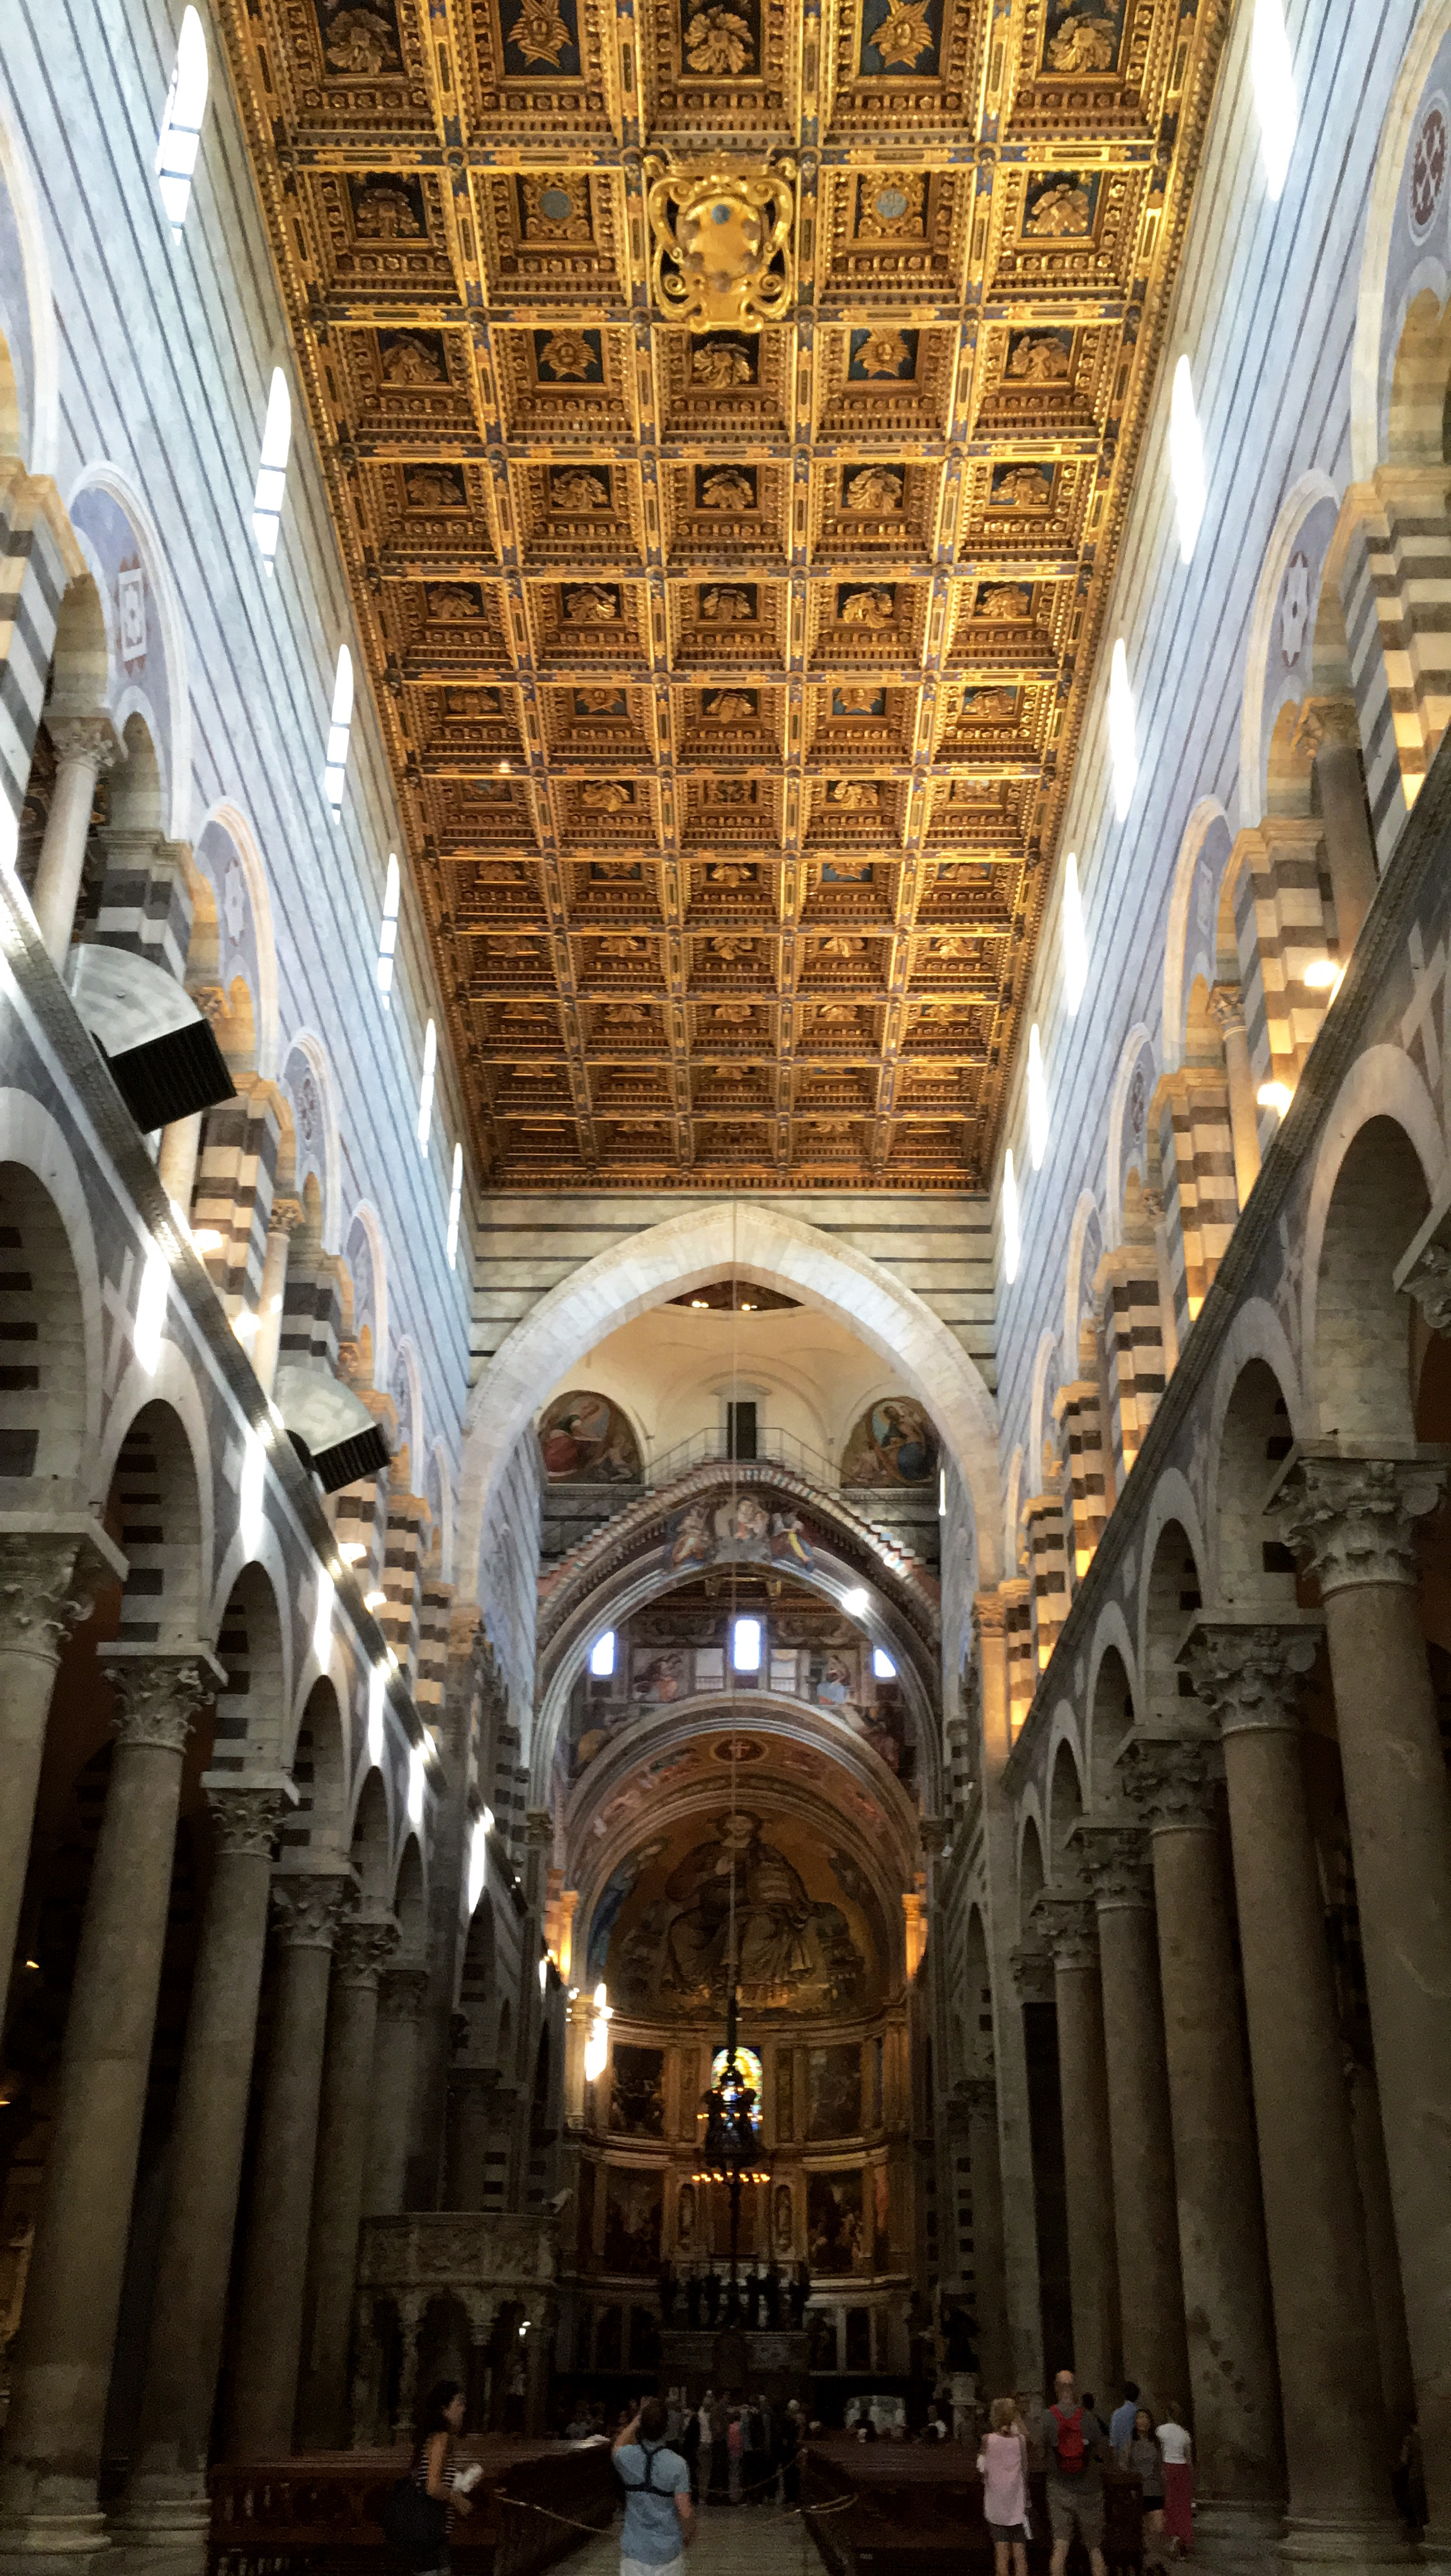 People are standing, walking, and taking pictures in the interior space of the Pisa Cathedral.